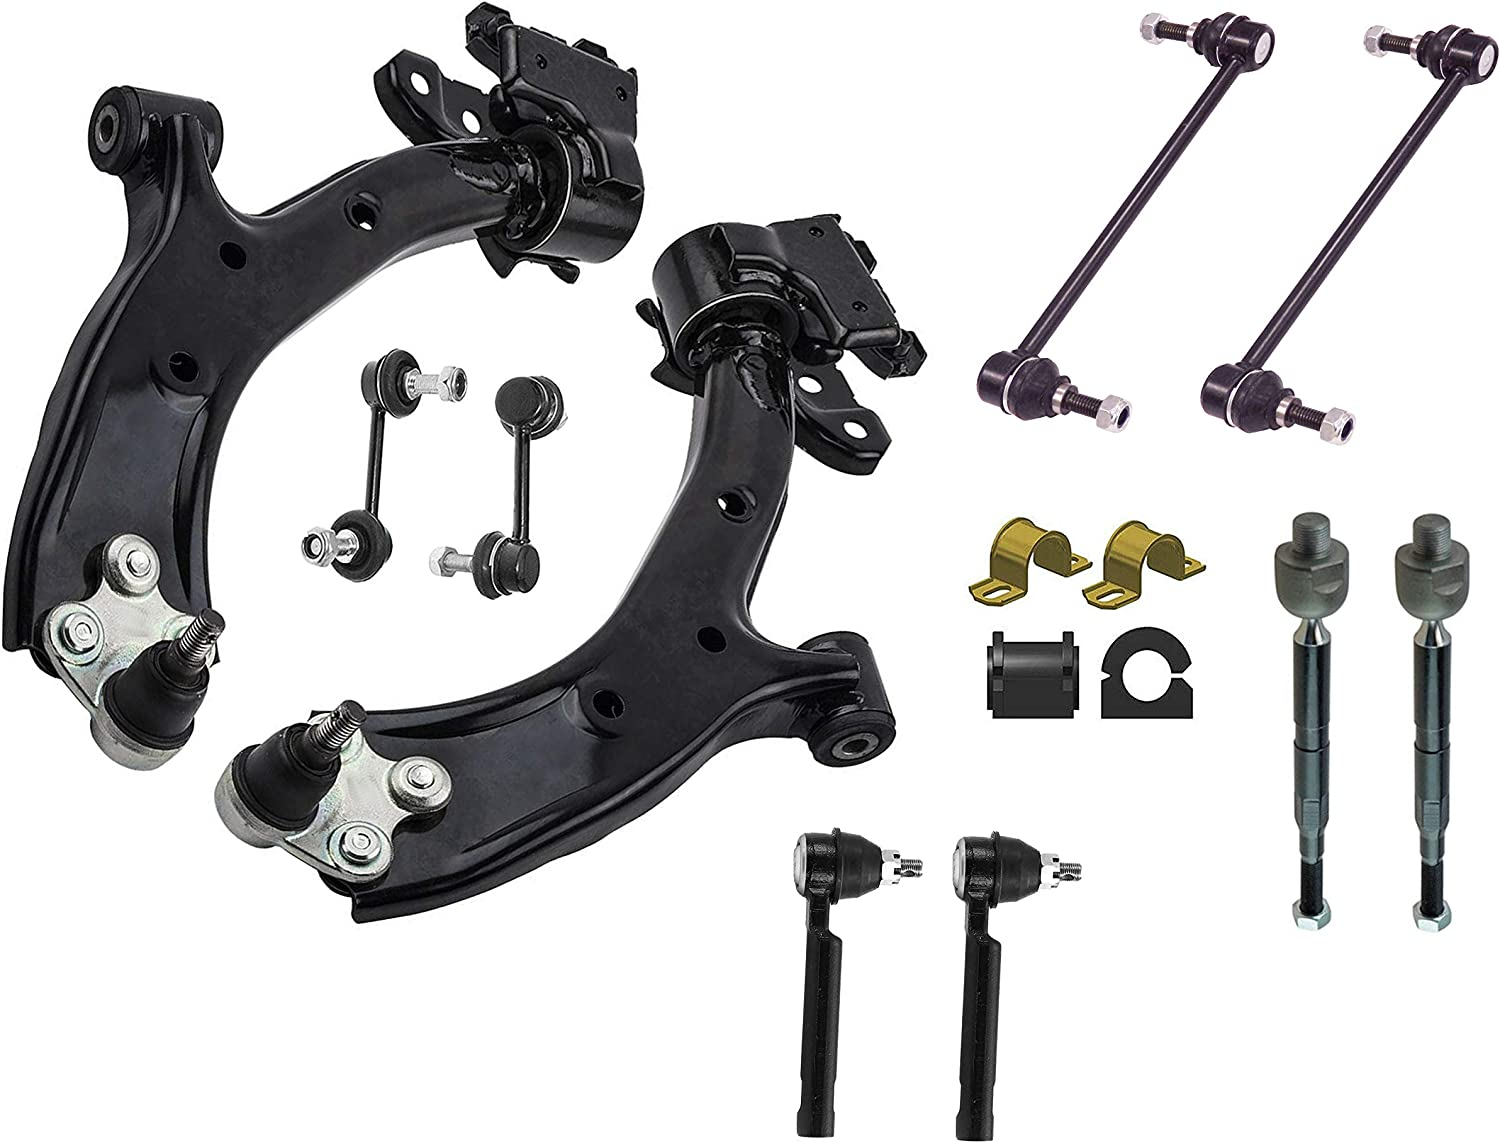 14PC Front Lower Control Arm Suspension Super beauty product restock quality top! Minneapolis Mall Honda 2007-2011 FITS Kit